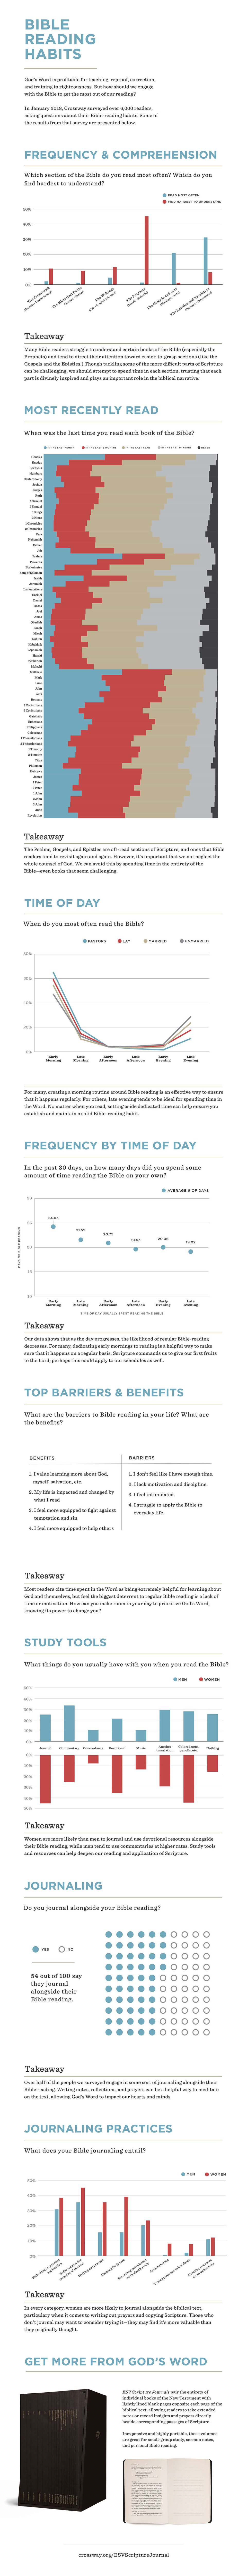 Click to enlarge Bible Reading Habits Infographic by Crossway